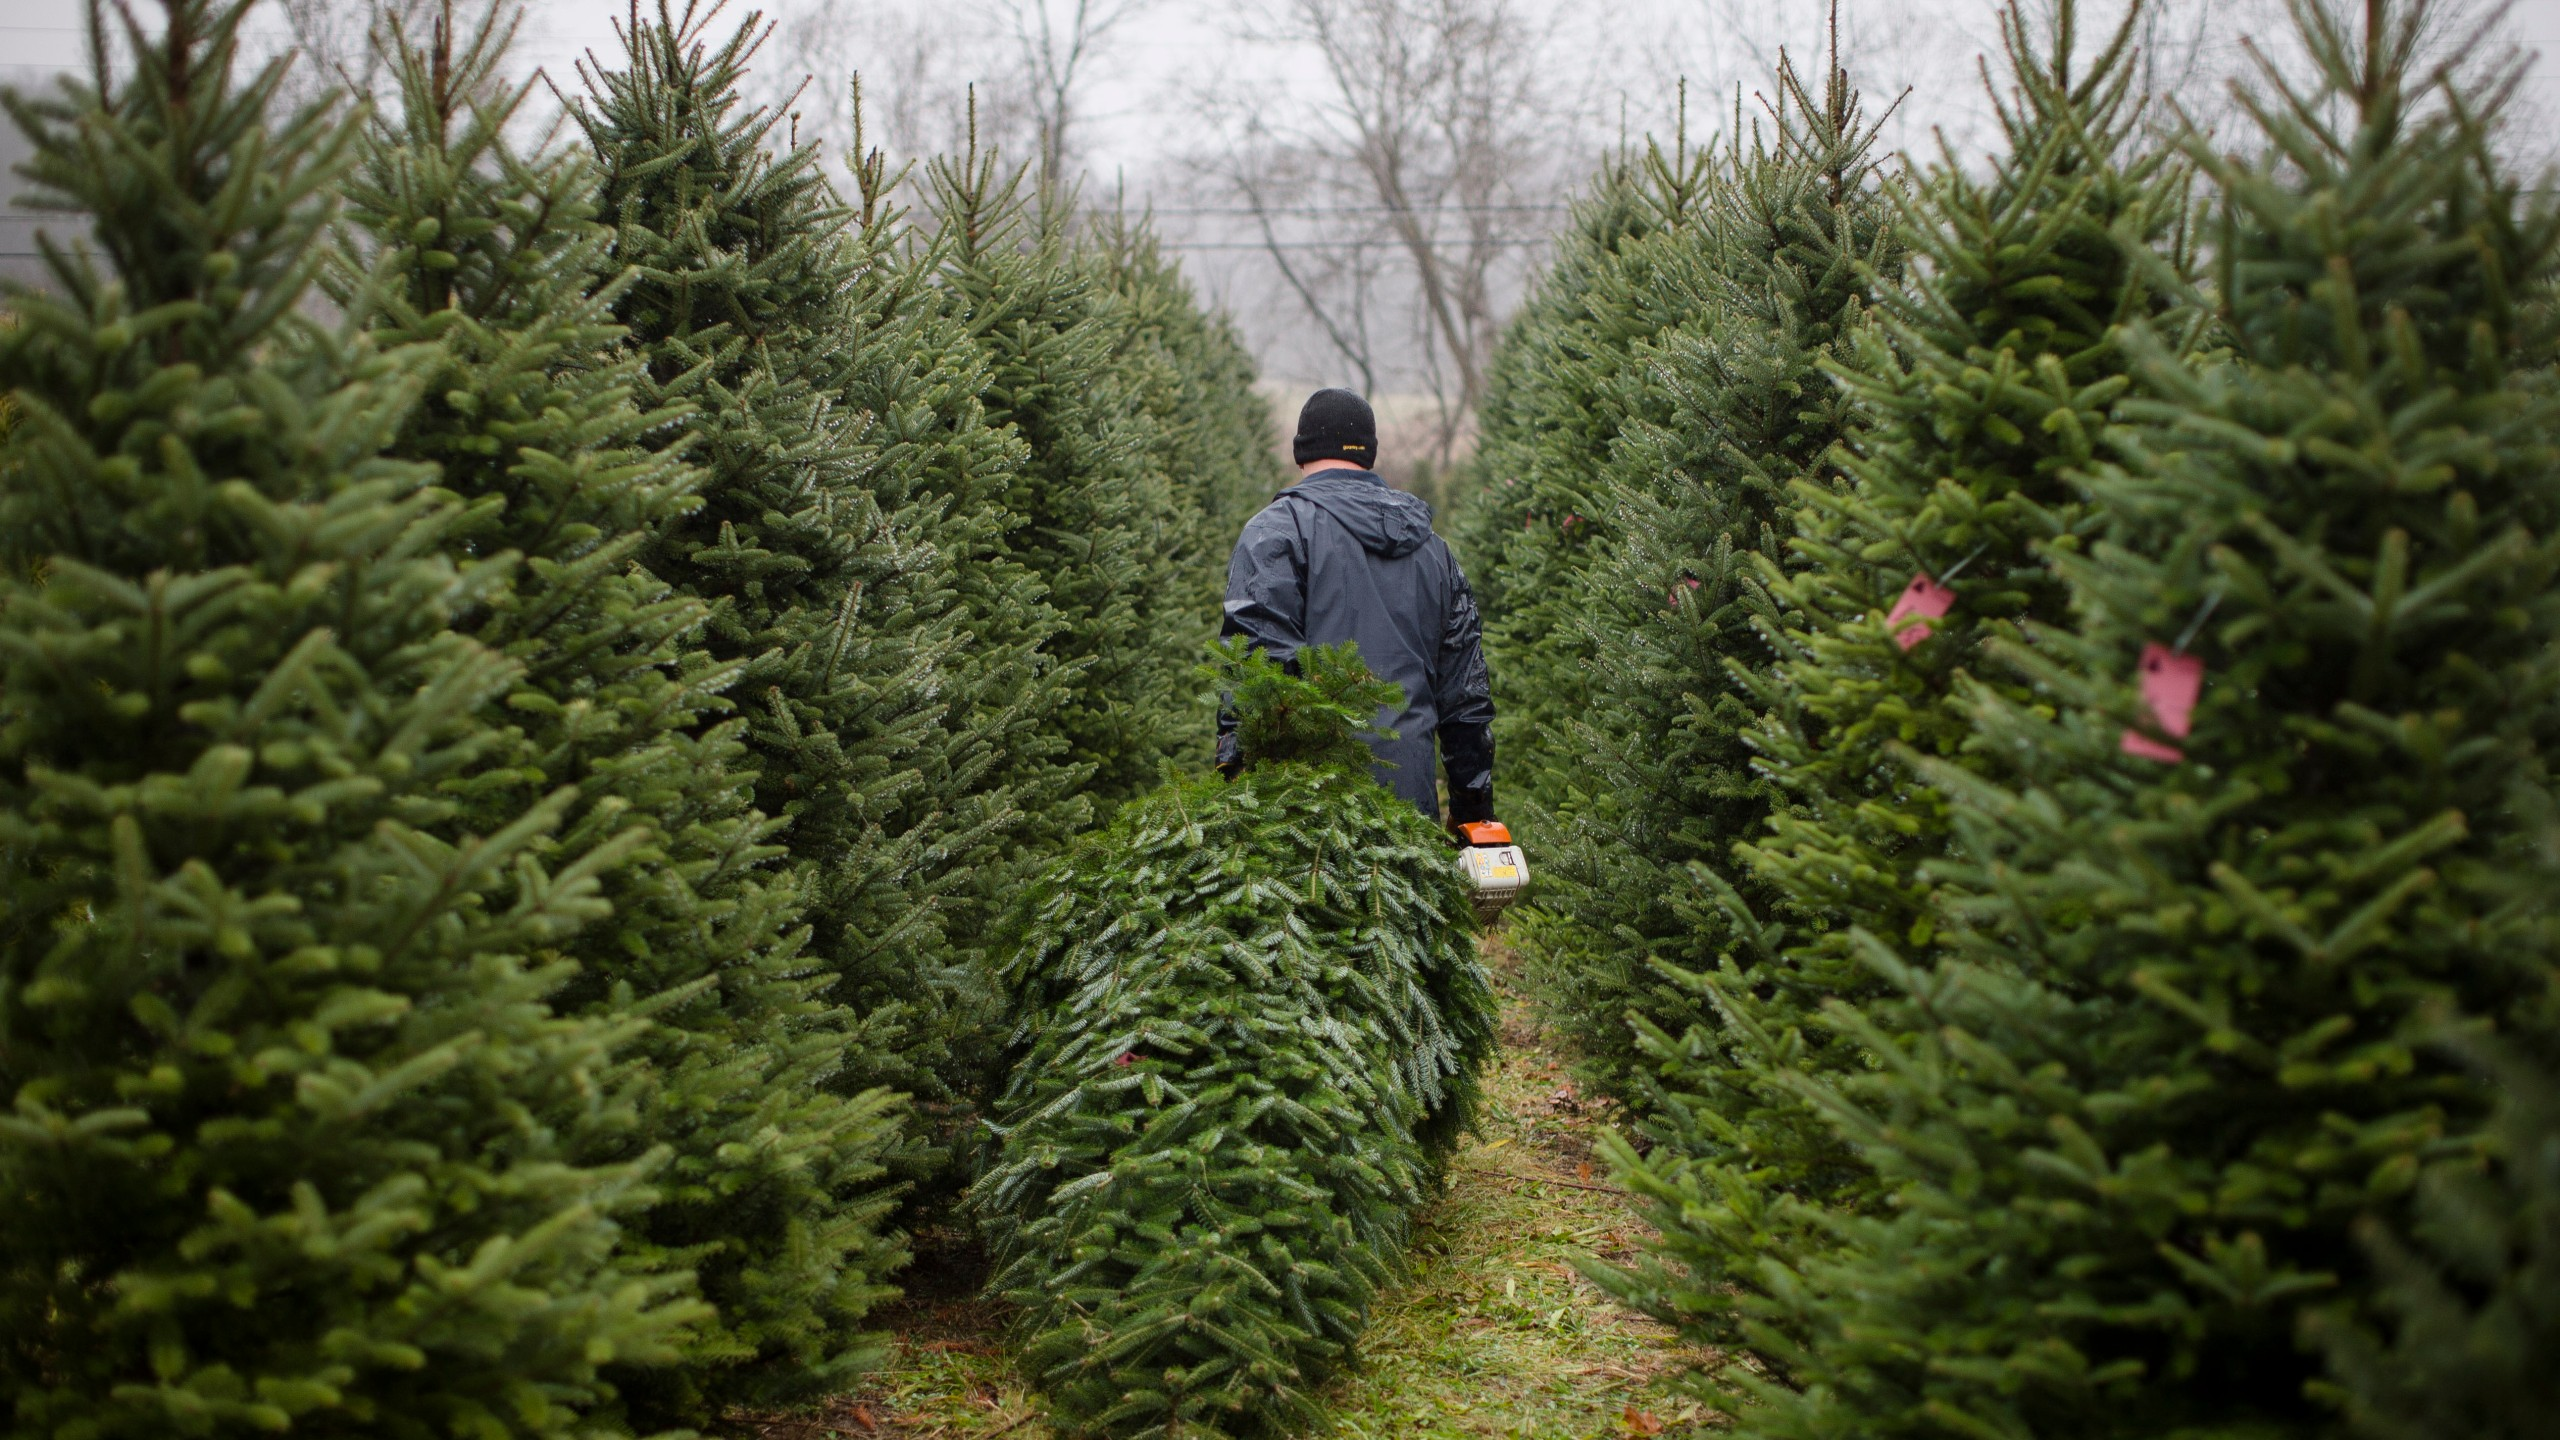 Cut Your Own Christmas Tree.Places To Cut Down Your Own Christmas Tree This Season